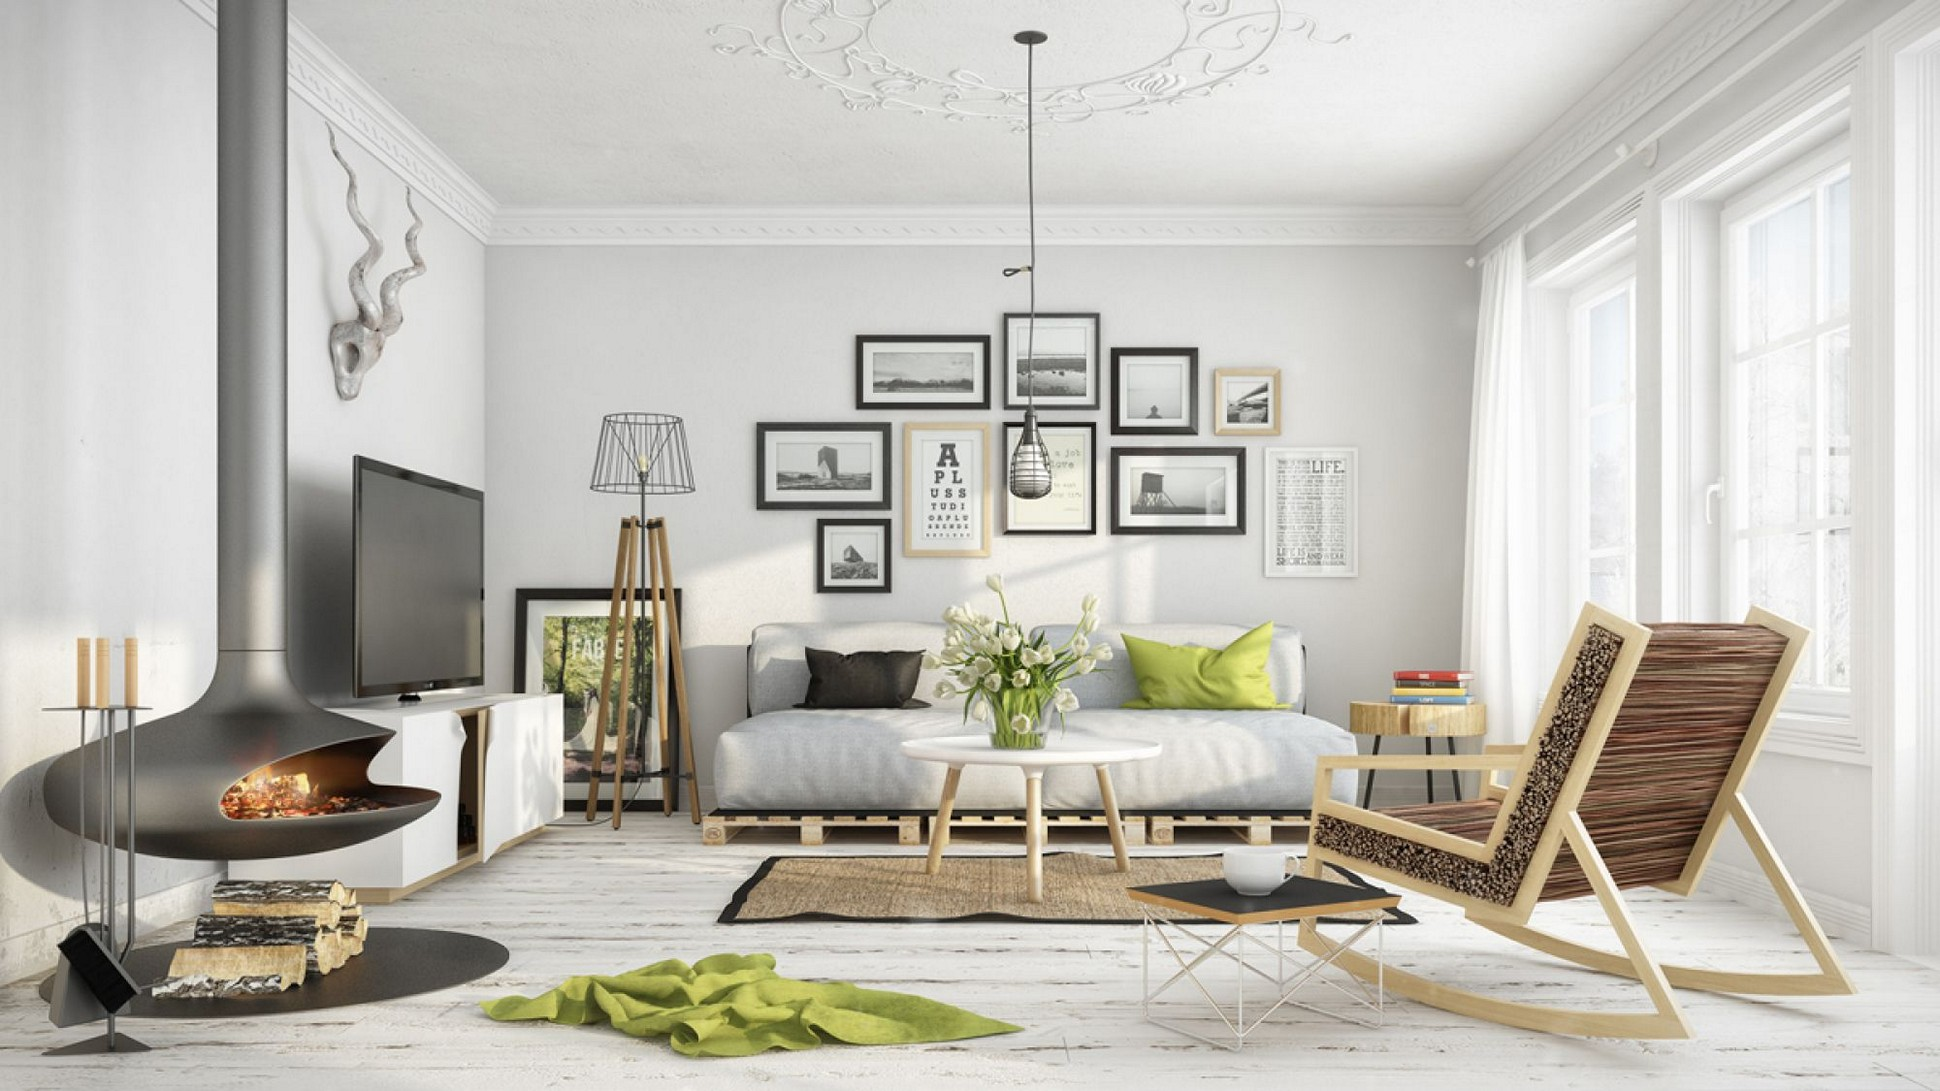 a rustic, scandinavian interior wiith a couch, paintings and other furniture